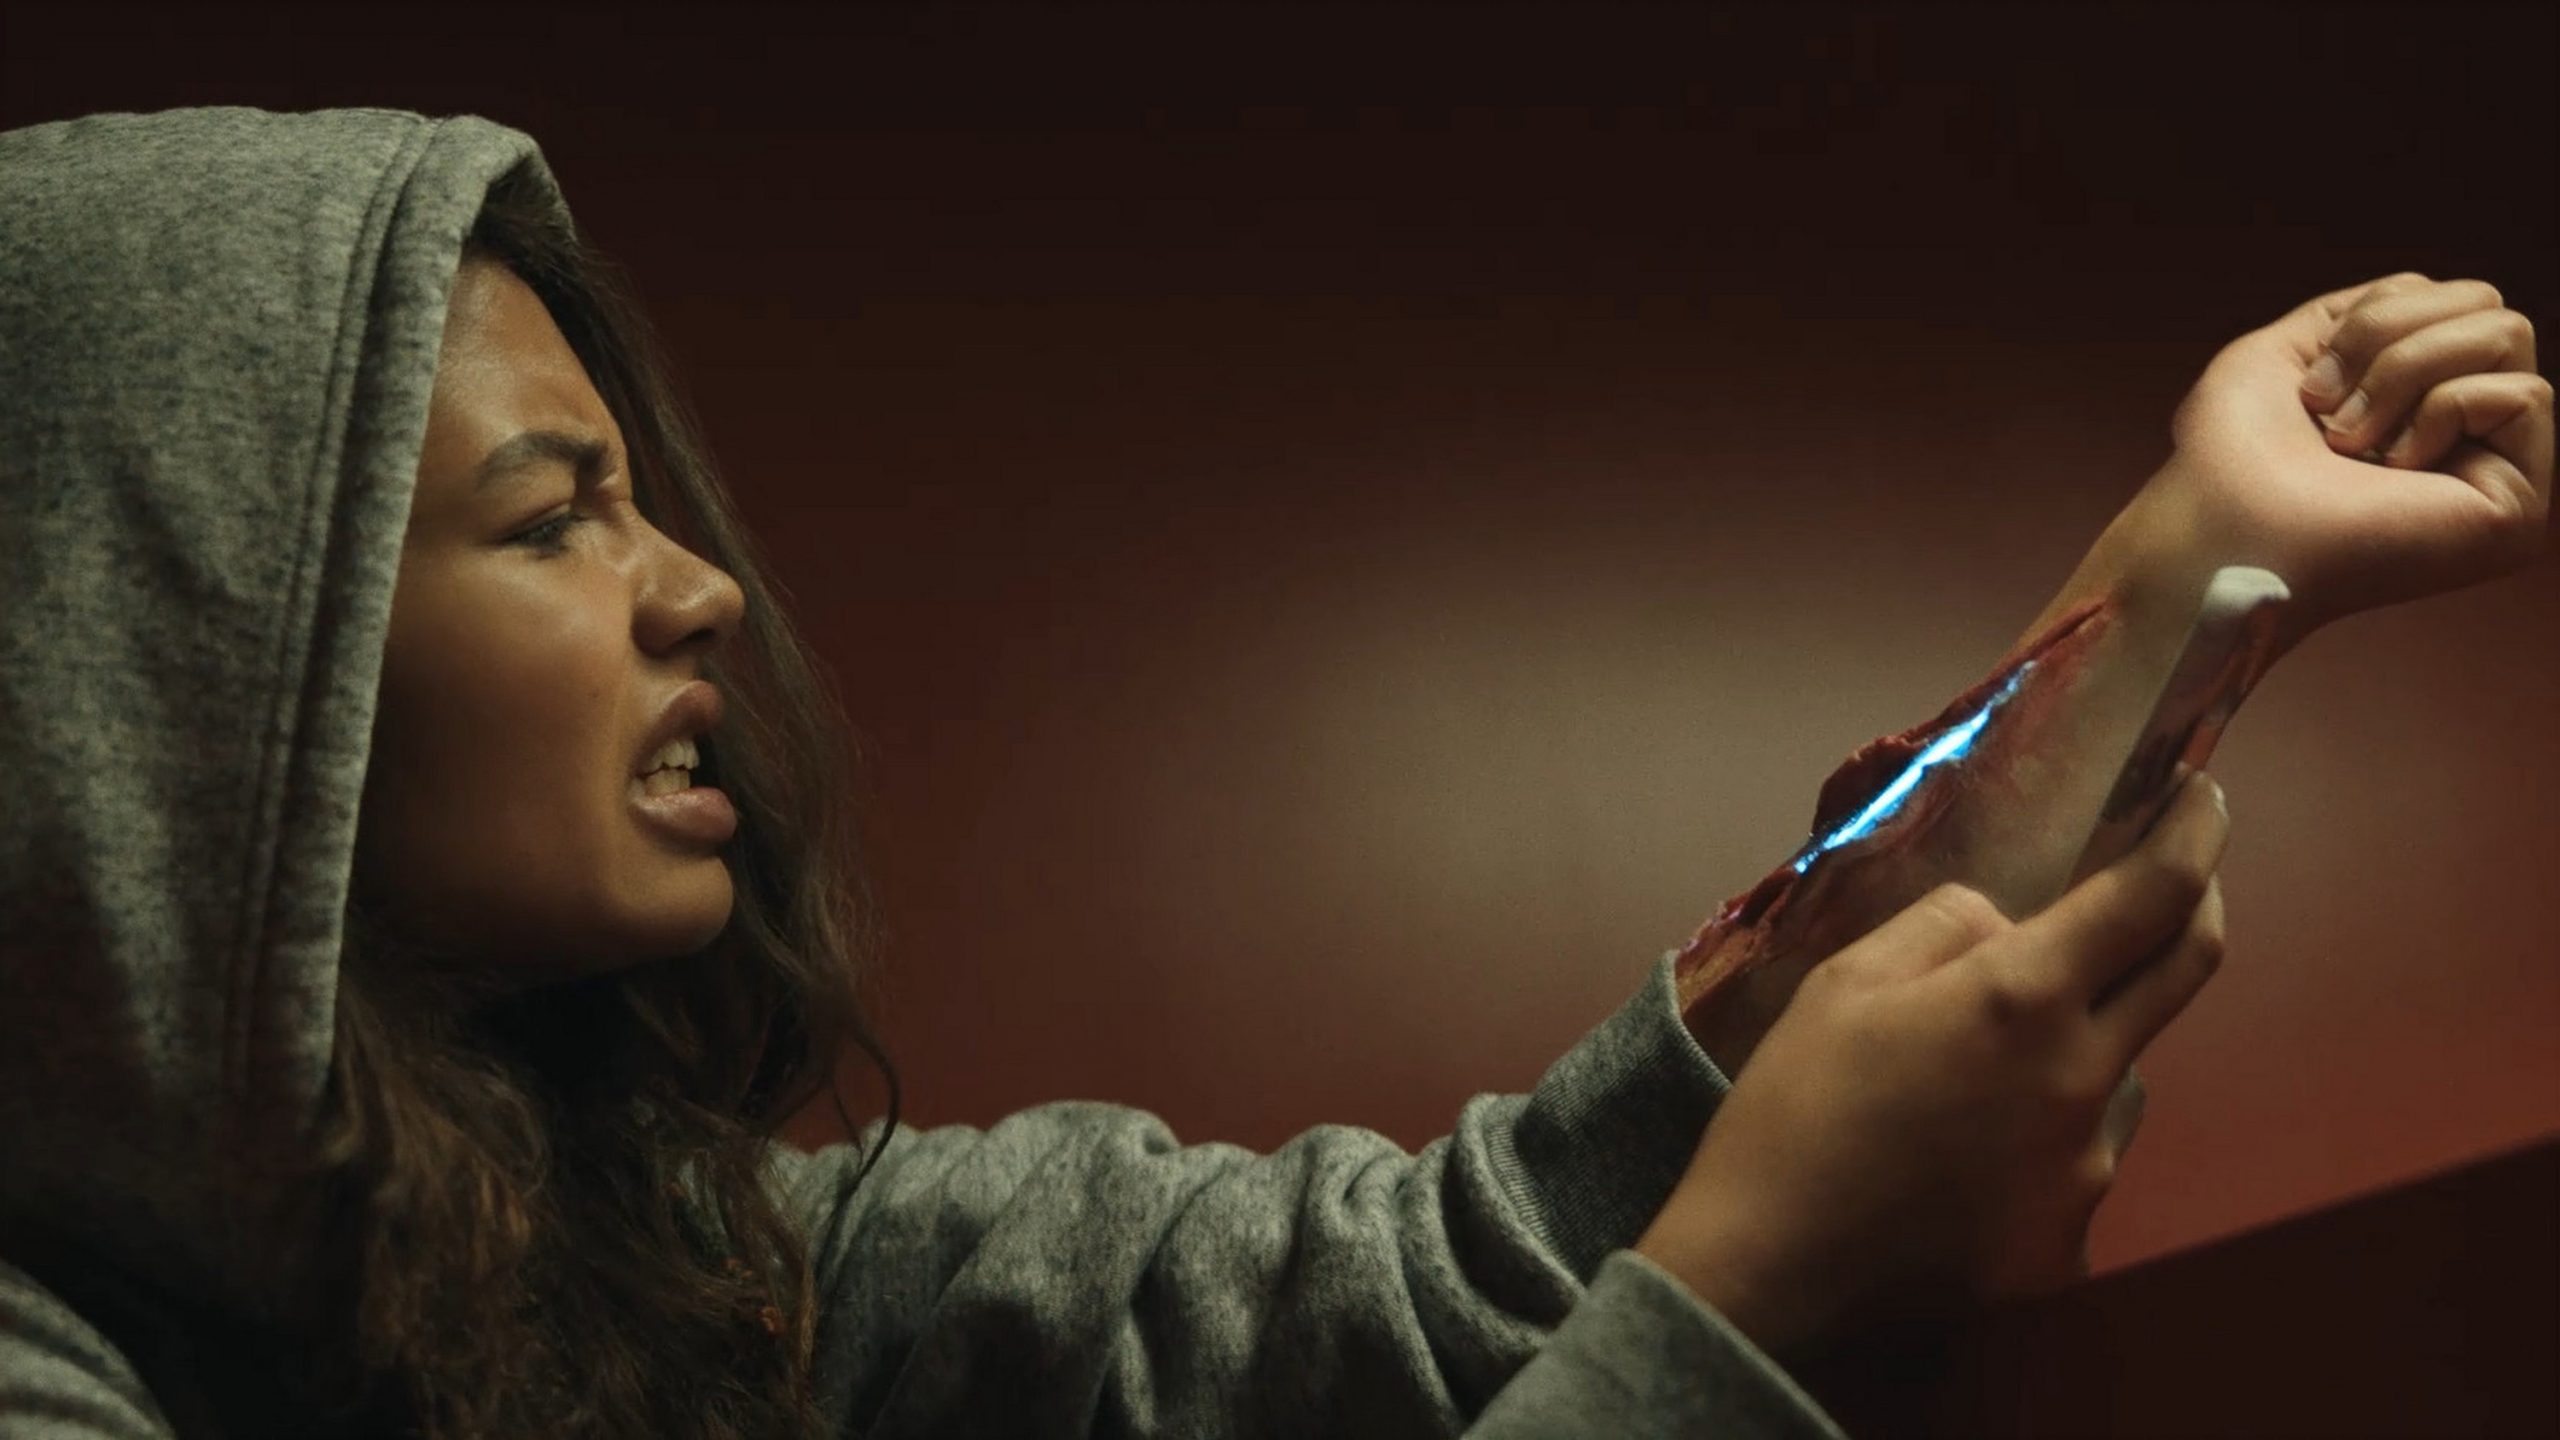 [Web Series Review] DON'T LOOK DEEPER